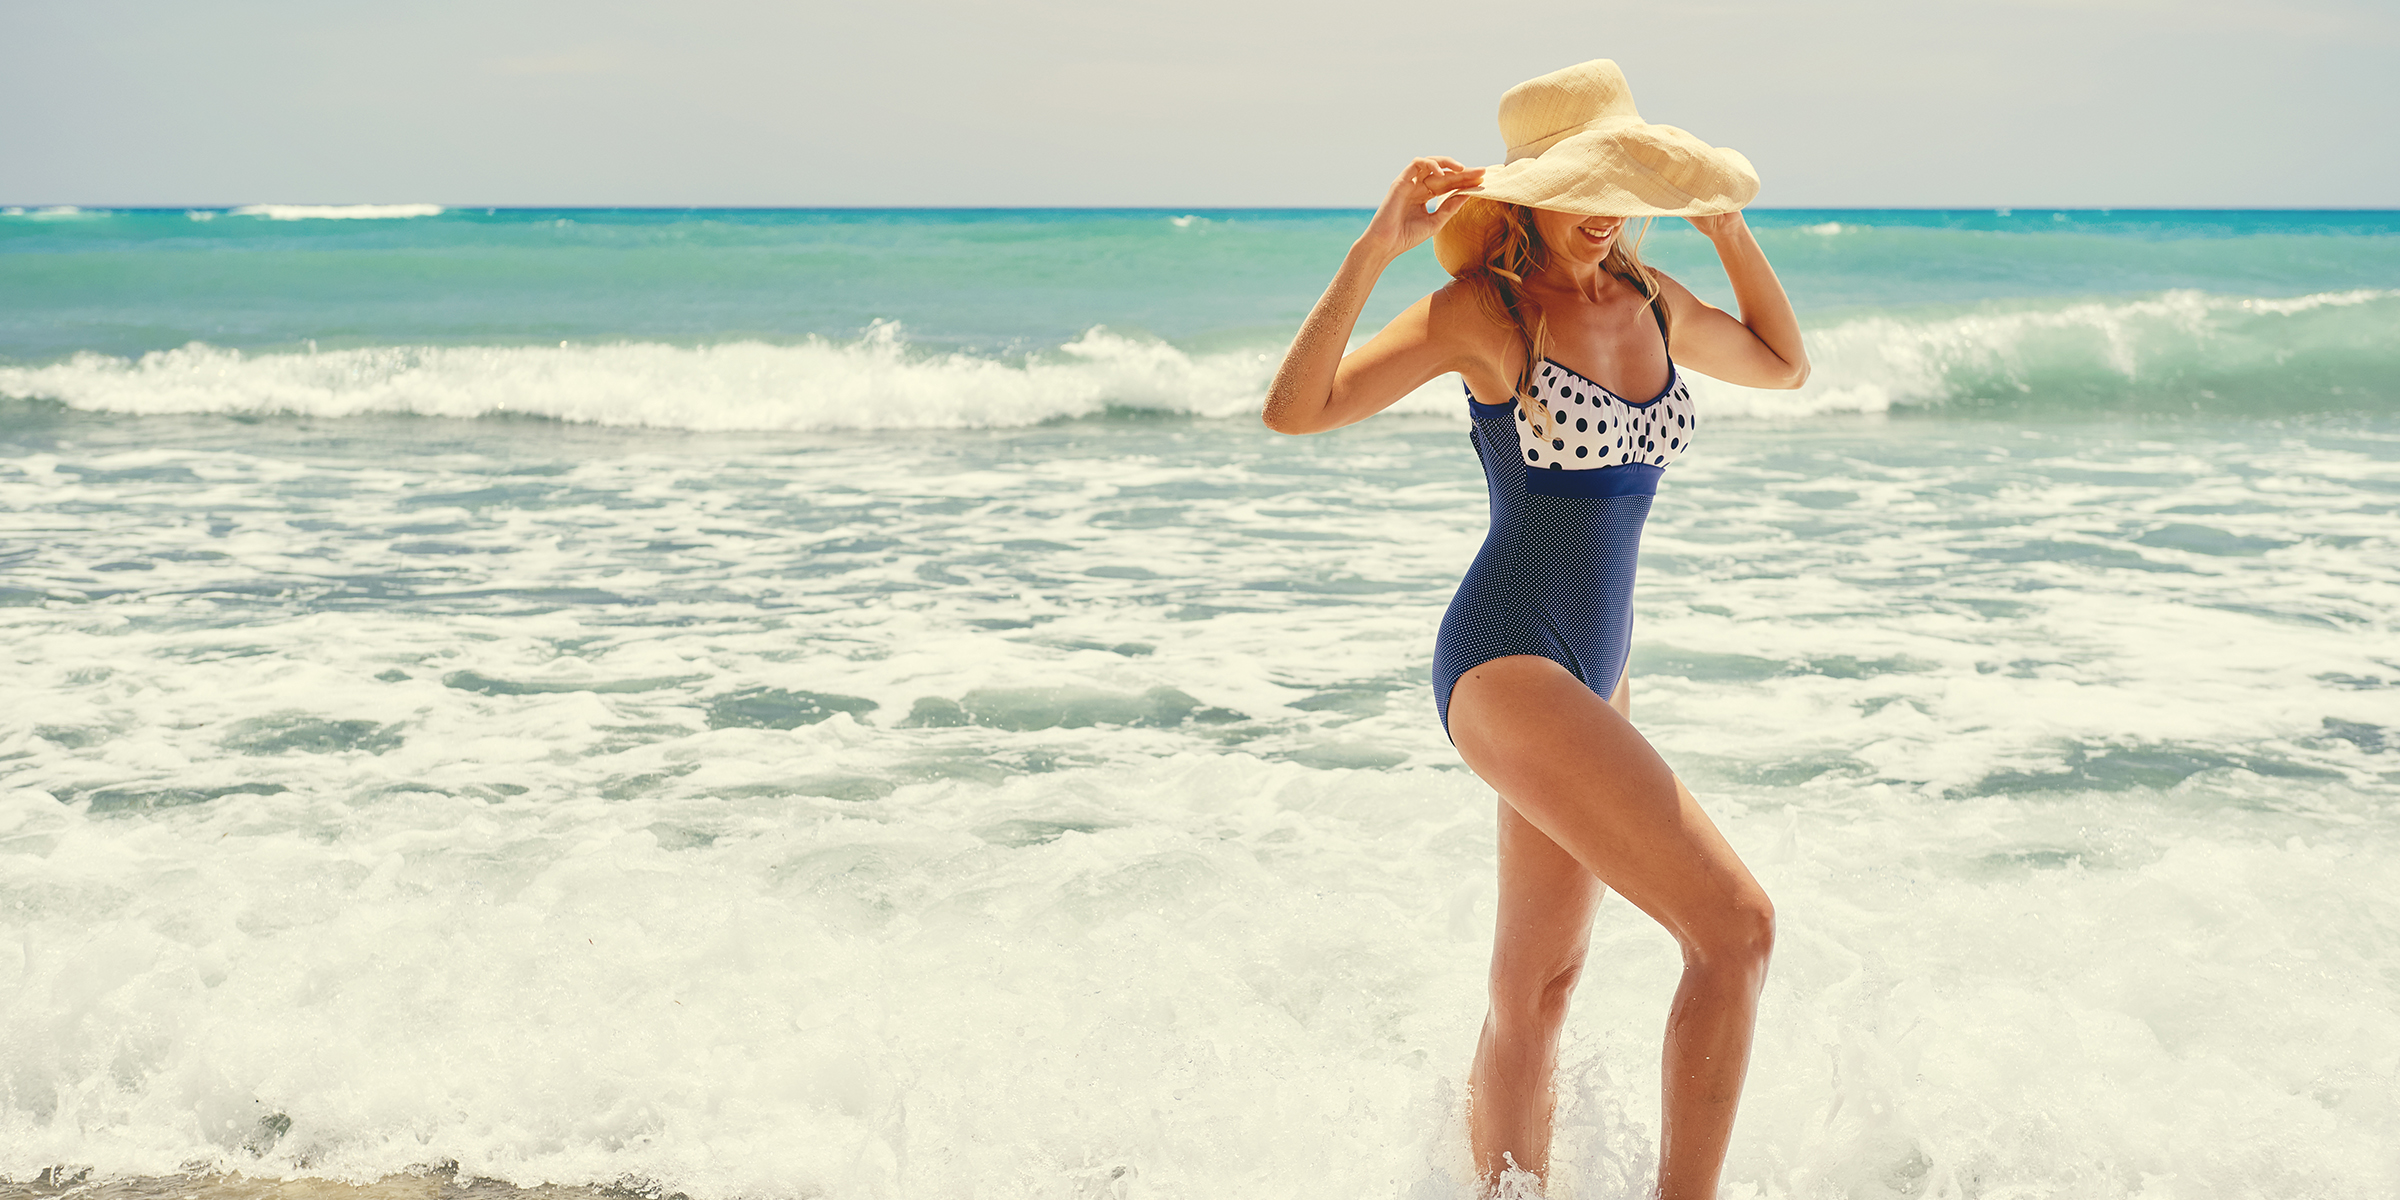 f1aee83514cda3 The best one-piece swimsuits to flatter every body shape in 2019